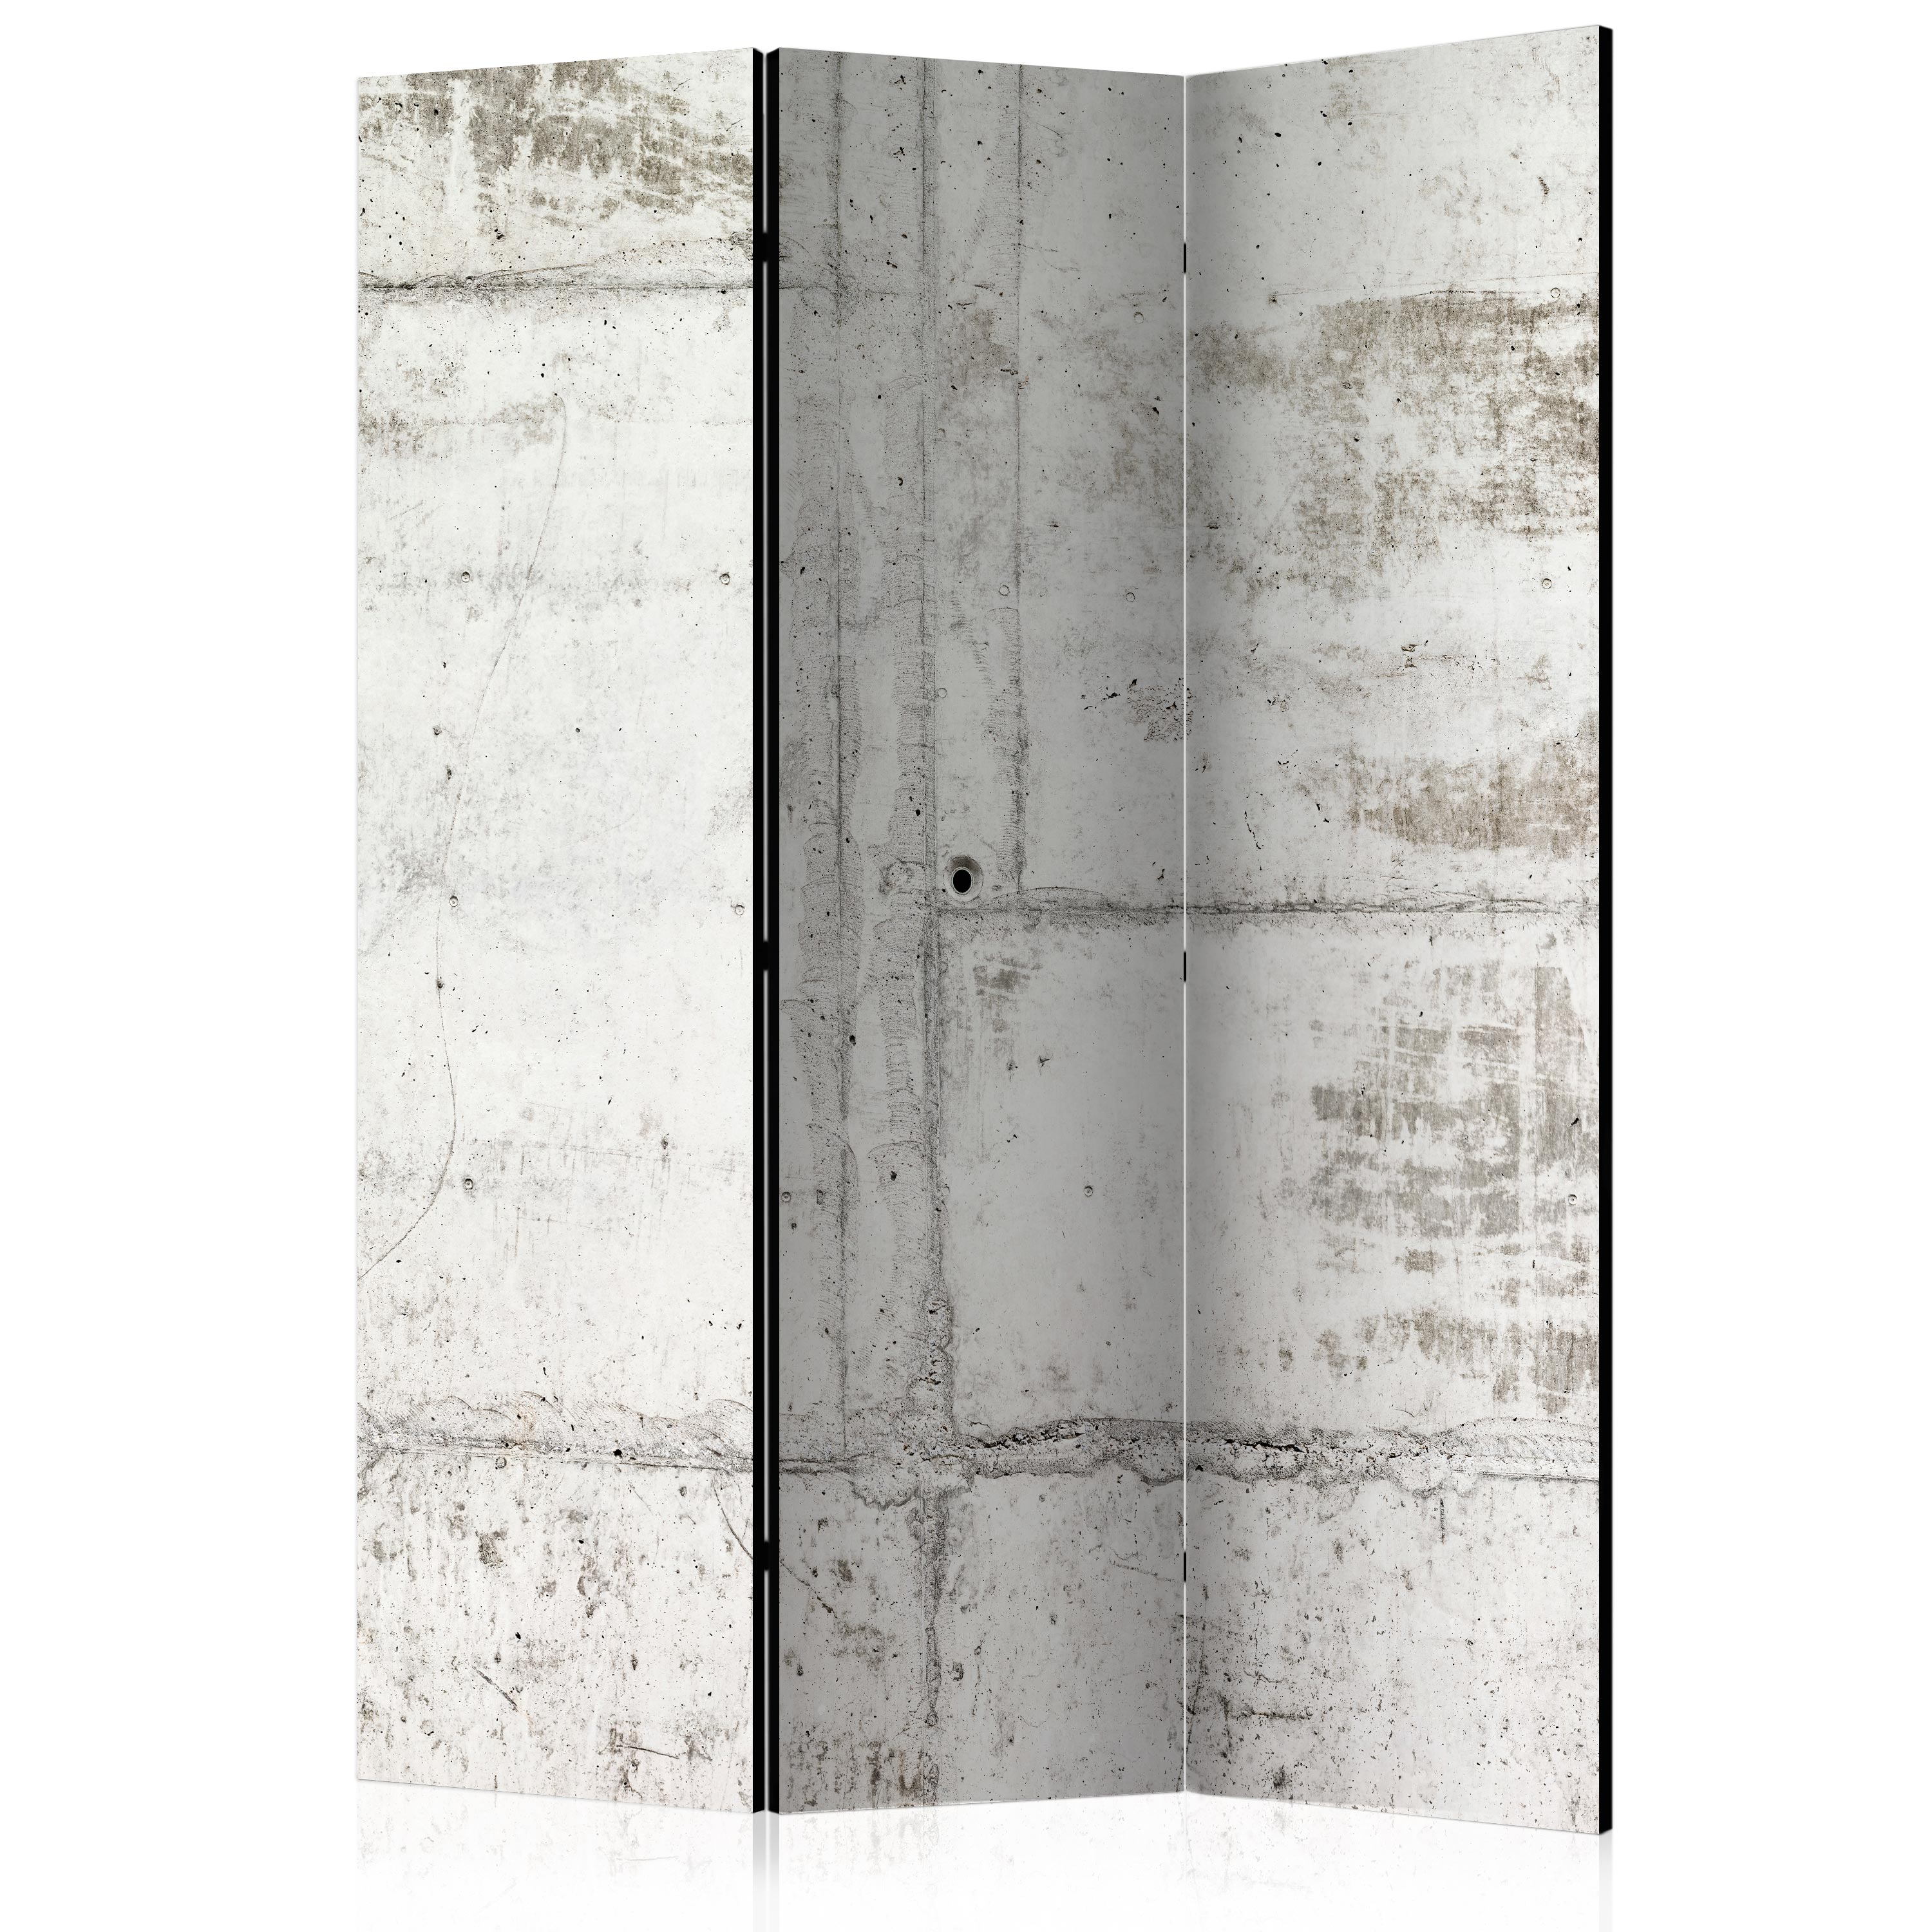 Paravento - Urban Bunker [Room Dividers] 135X172 cm